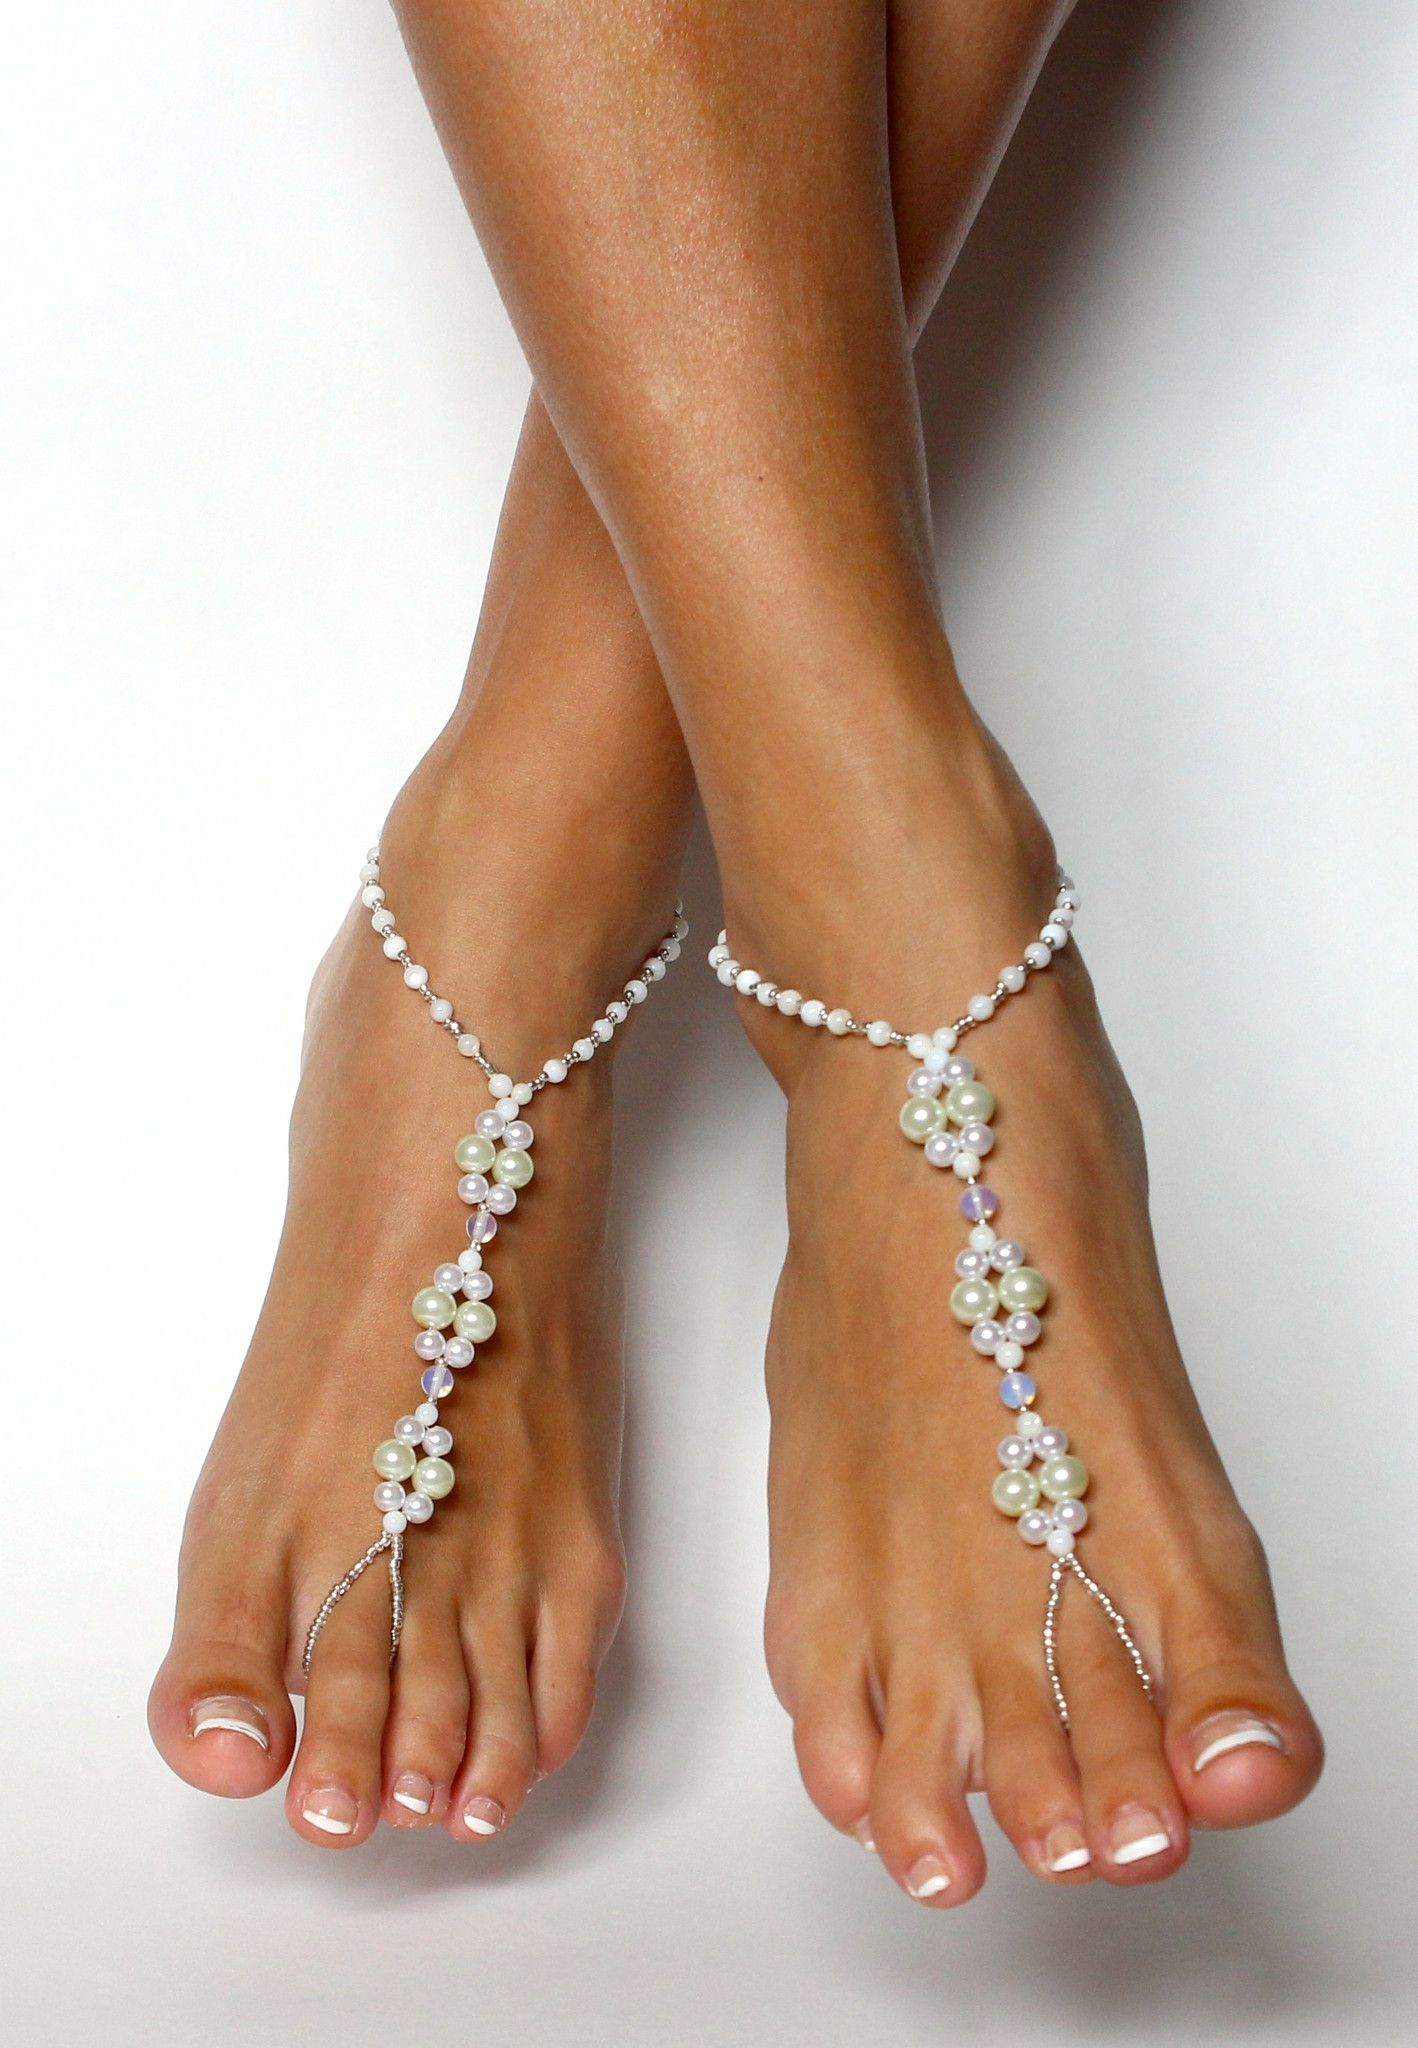 Barefoot Wedding Jewelry for Your Feet from Bare Sandals Bare Foot